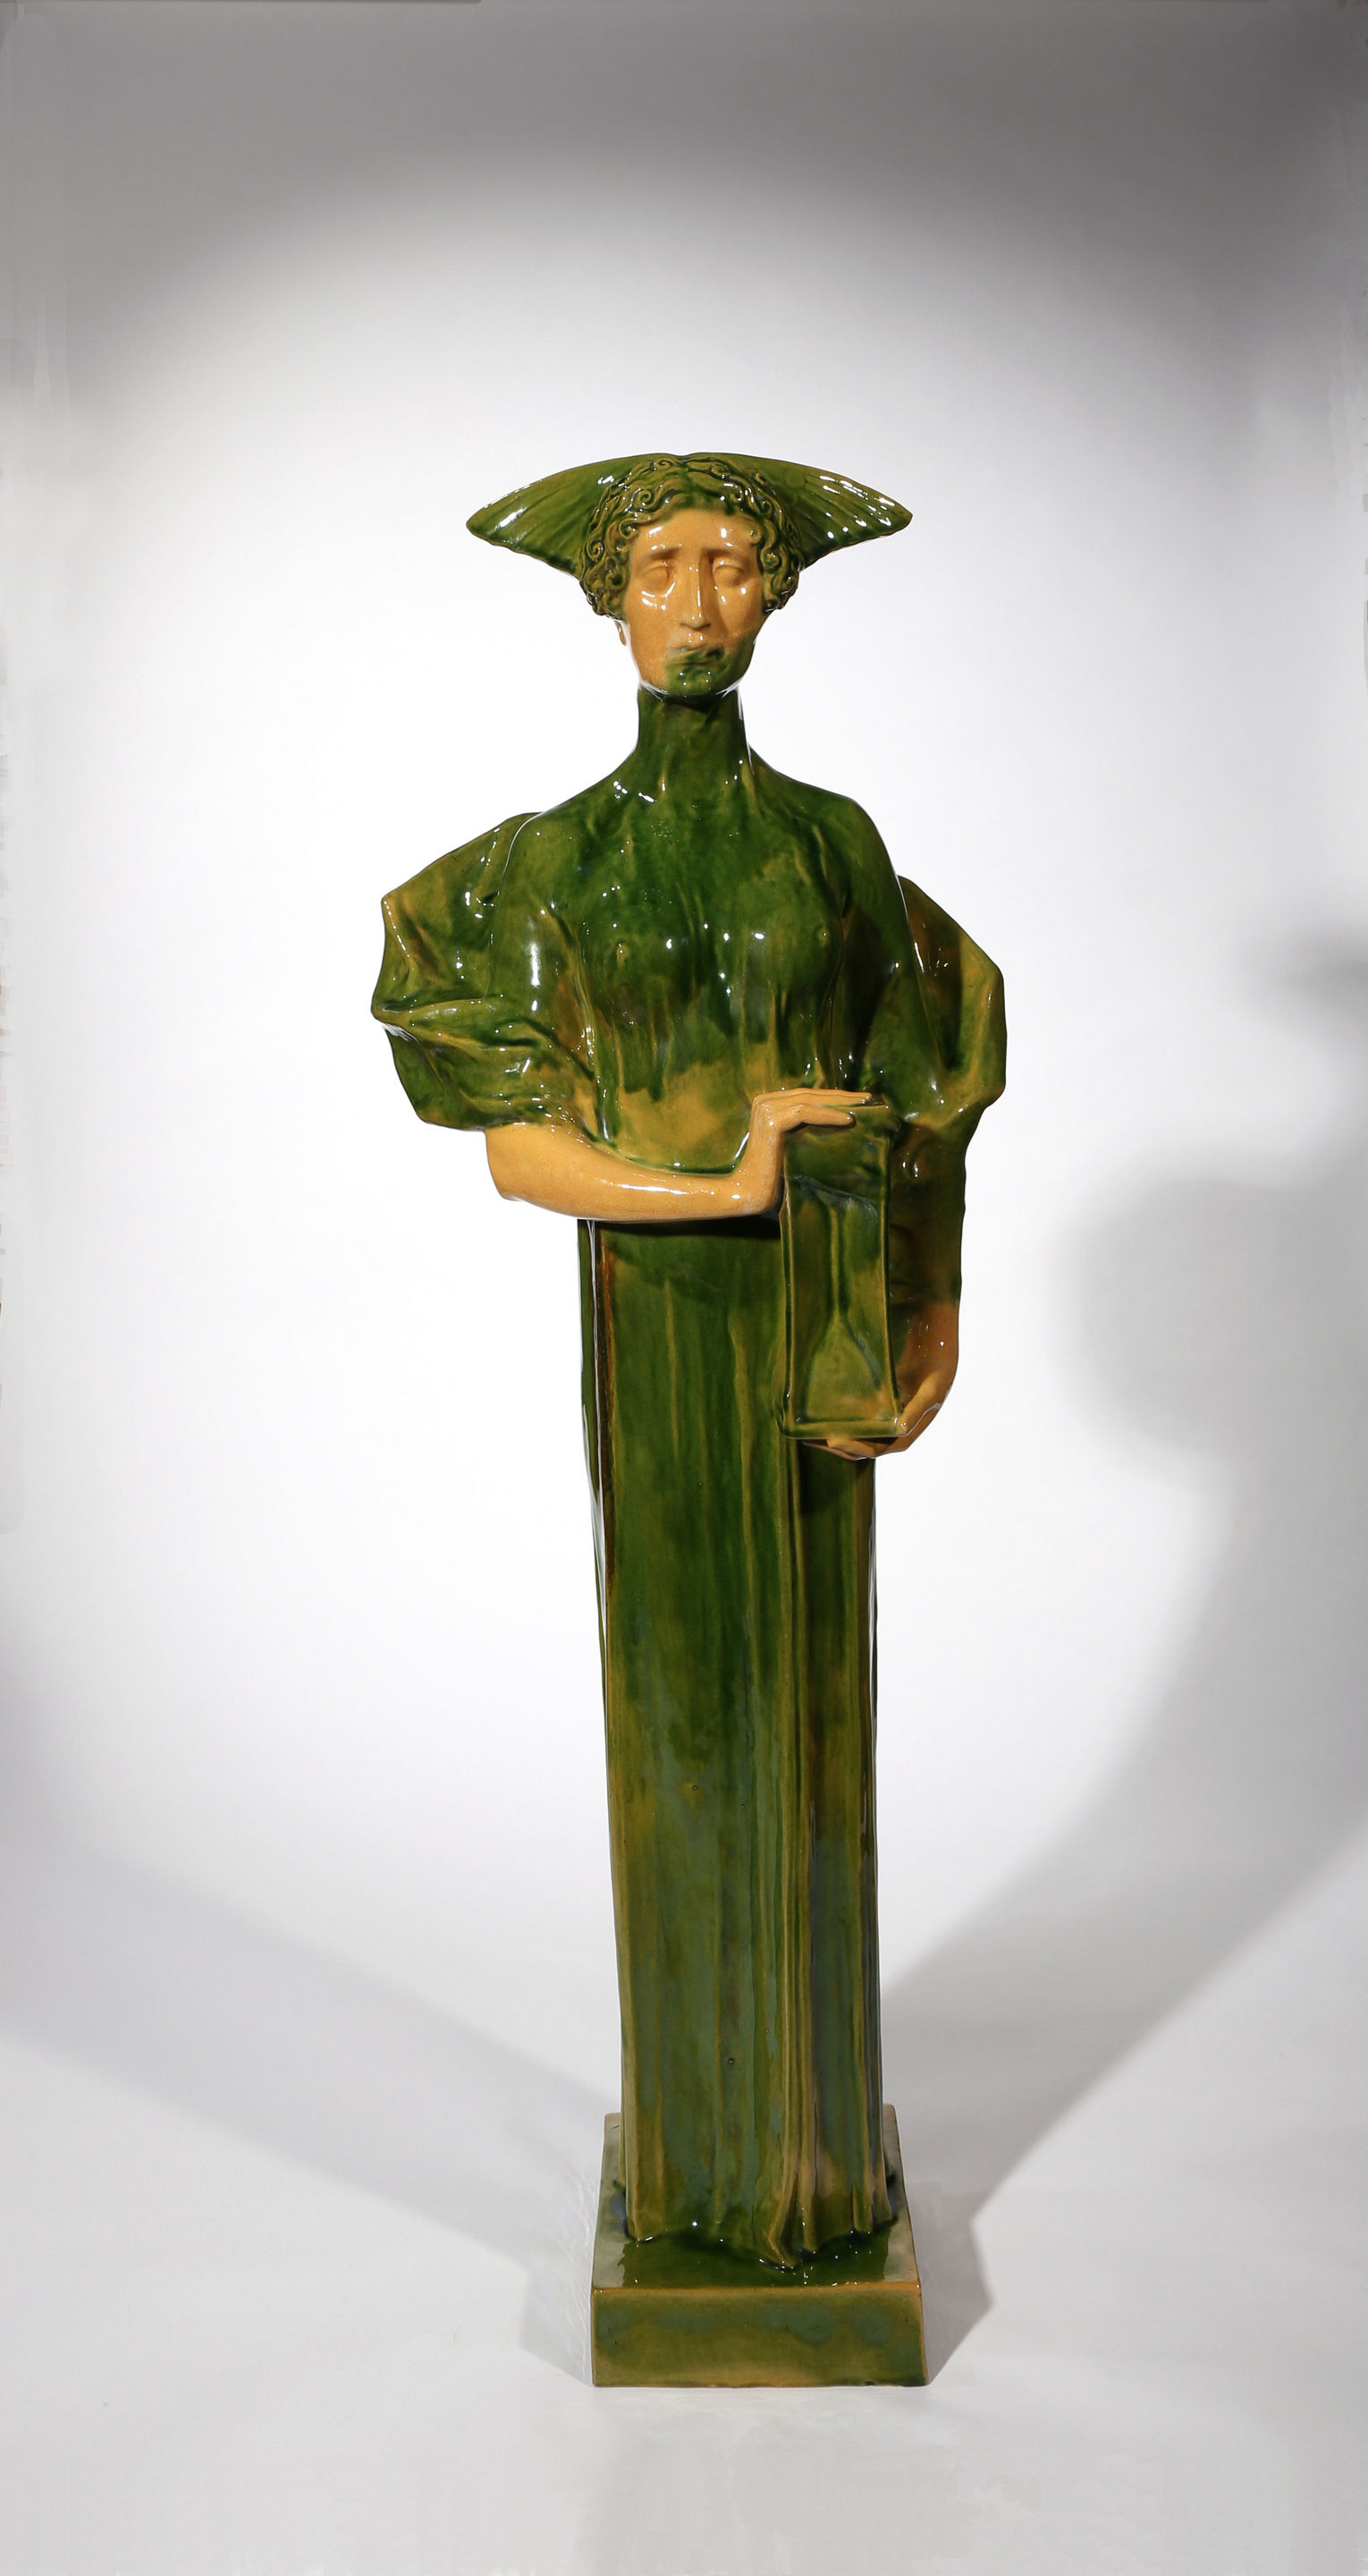 A Large Glazed Pottery Figure of Fate, By Michael Powolny